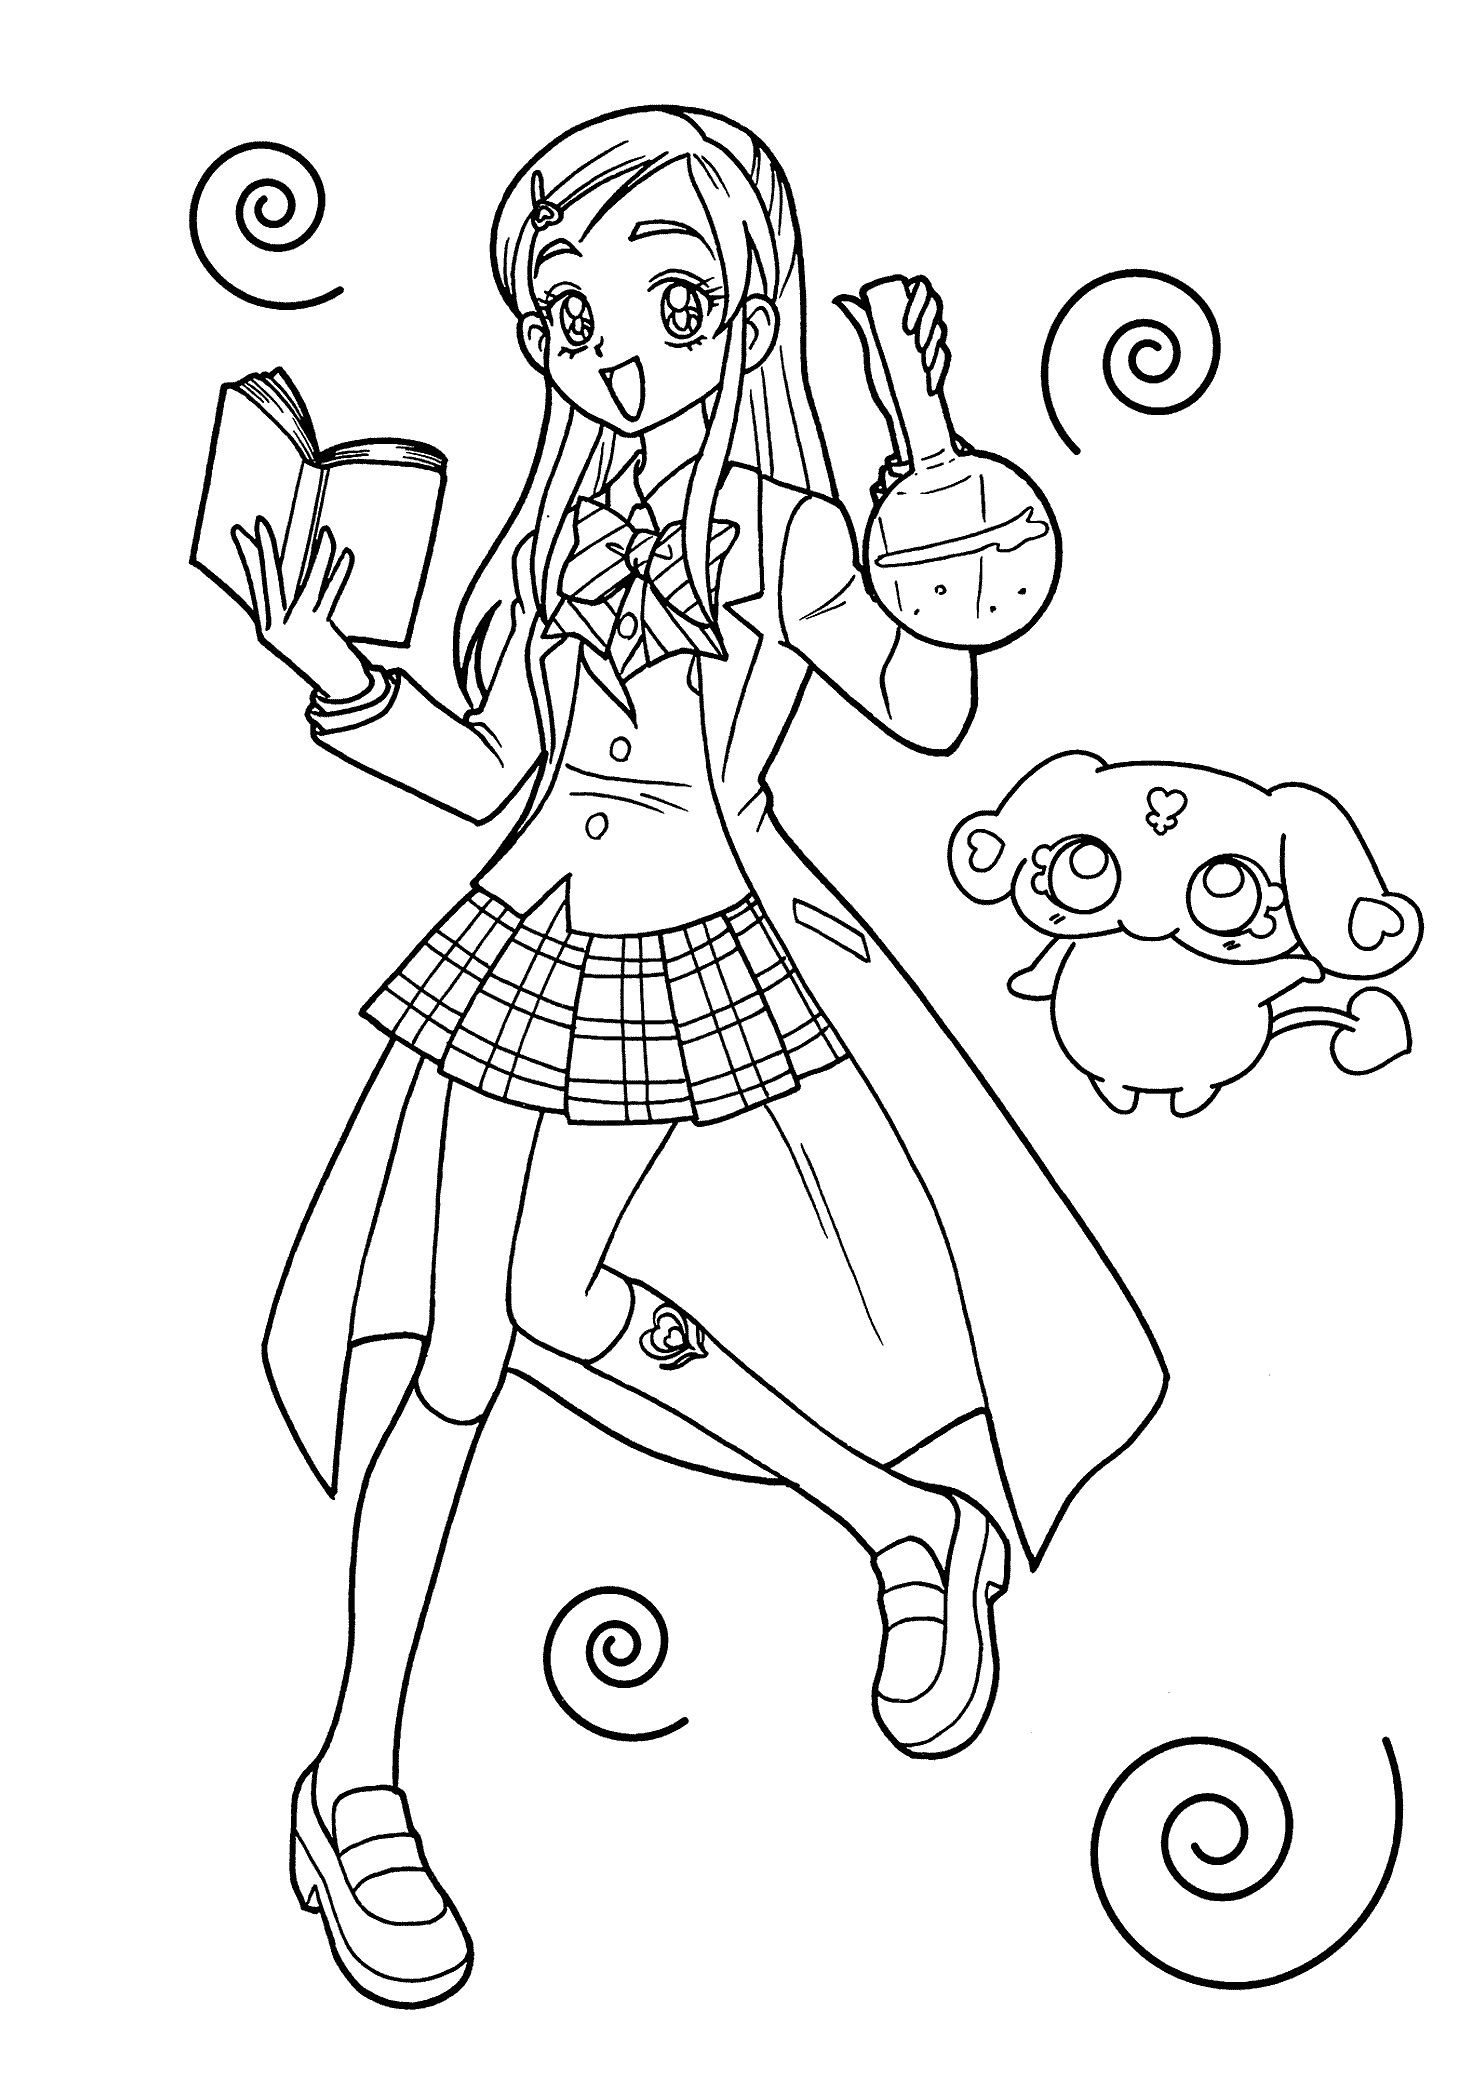 27 Pretty Image Of Glitter Force Coloring Pages Entitlementtrap Com Moon Coloring Pages Coloring Pages For Girls Cute Coloring Pages